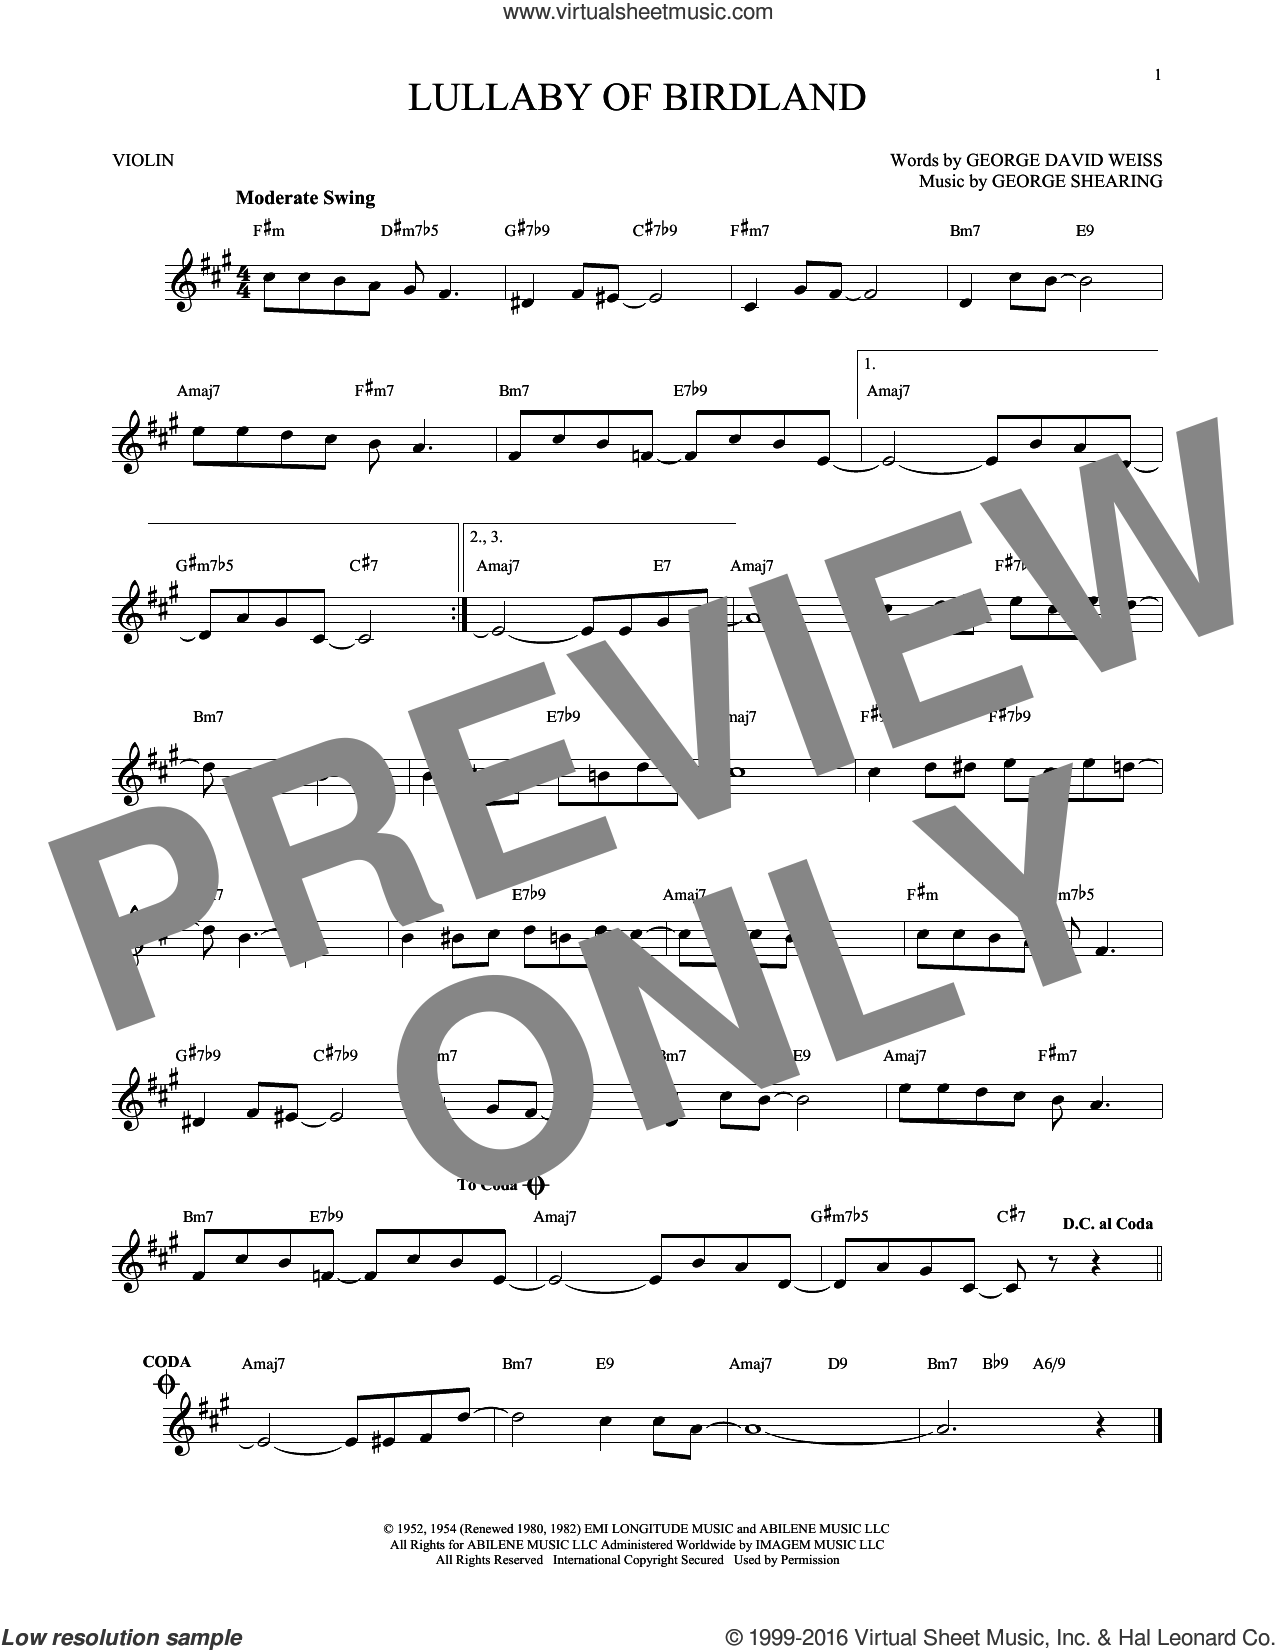 Lullaby Of Birdland sheet music for violin solo by George David Weiss and George Shearing. Score Image Preview.